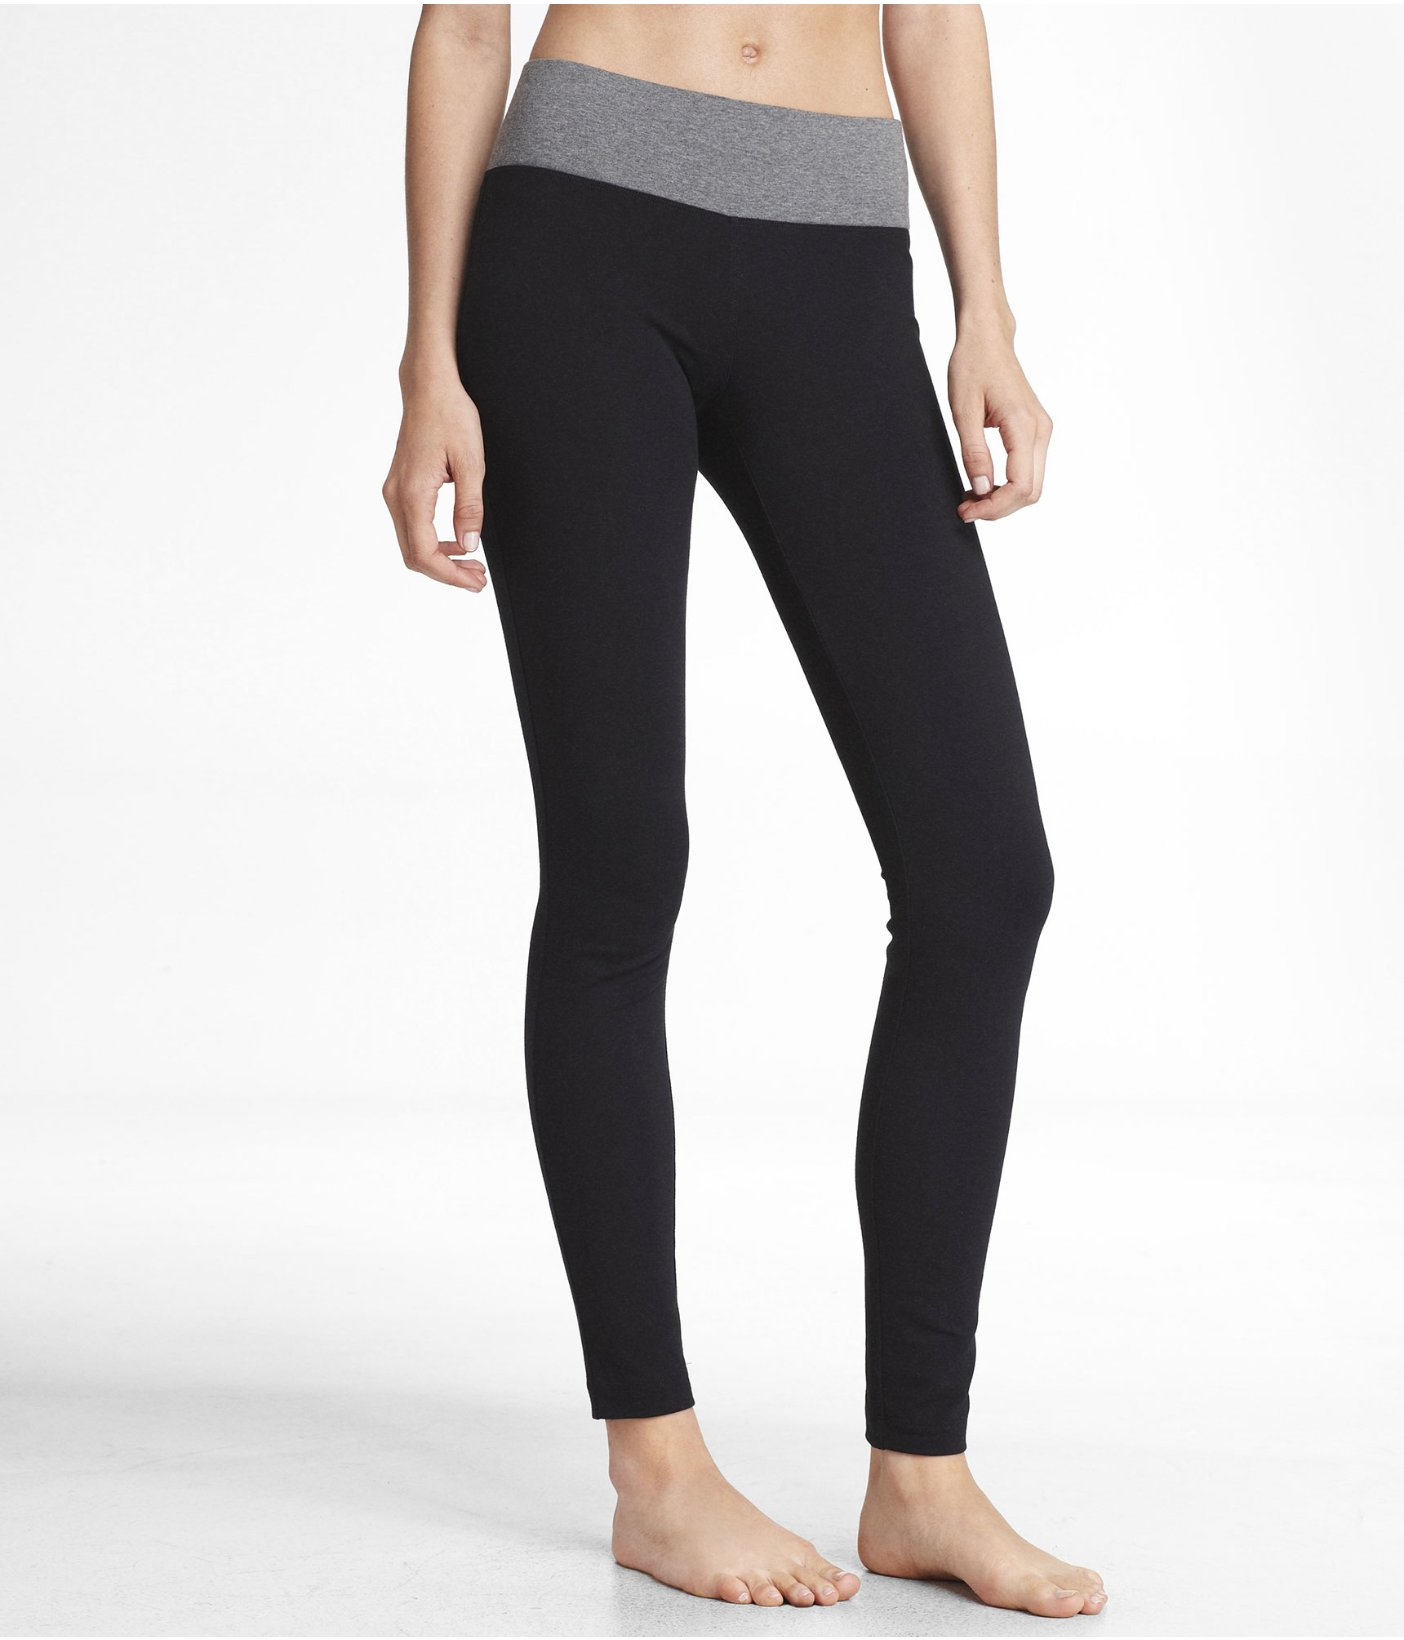 LOVE EXPRESS YOGA CROP PANT From EXPRESS